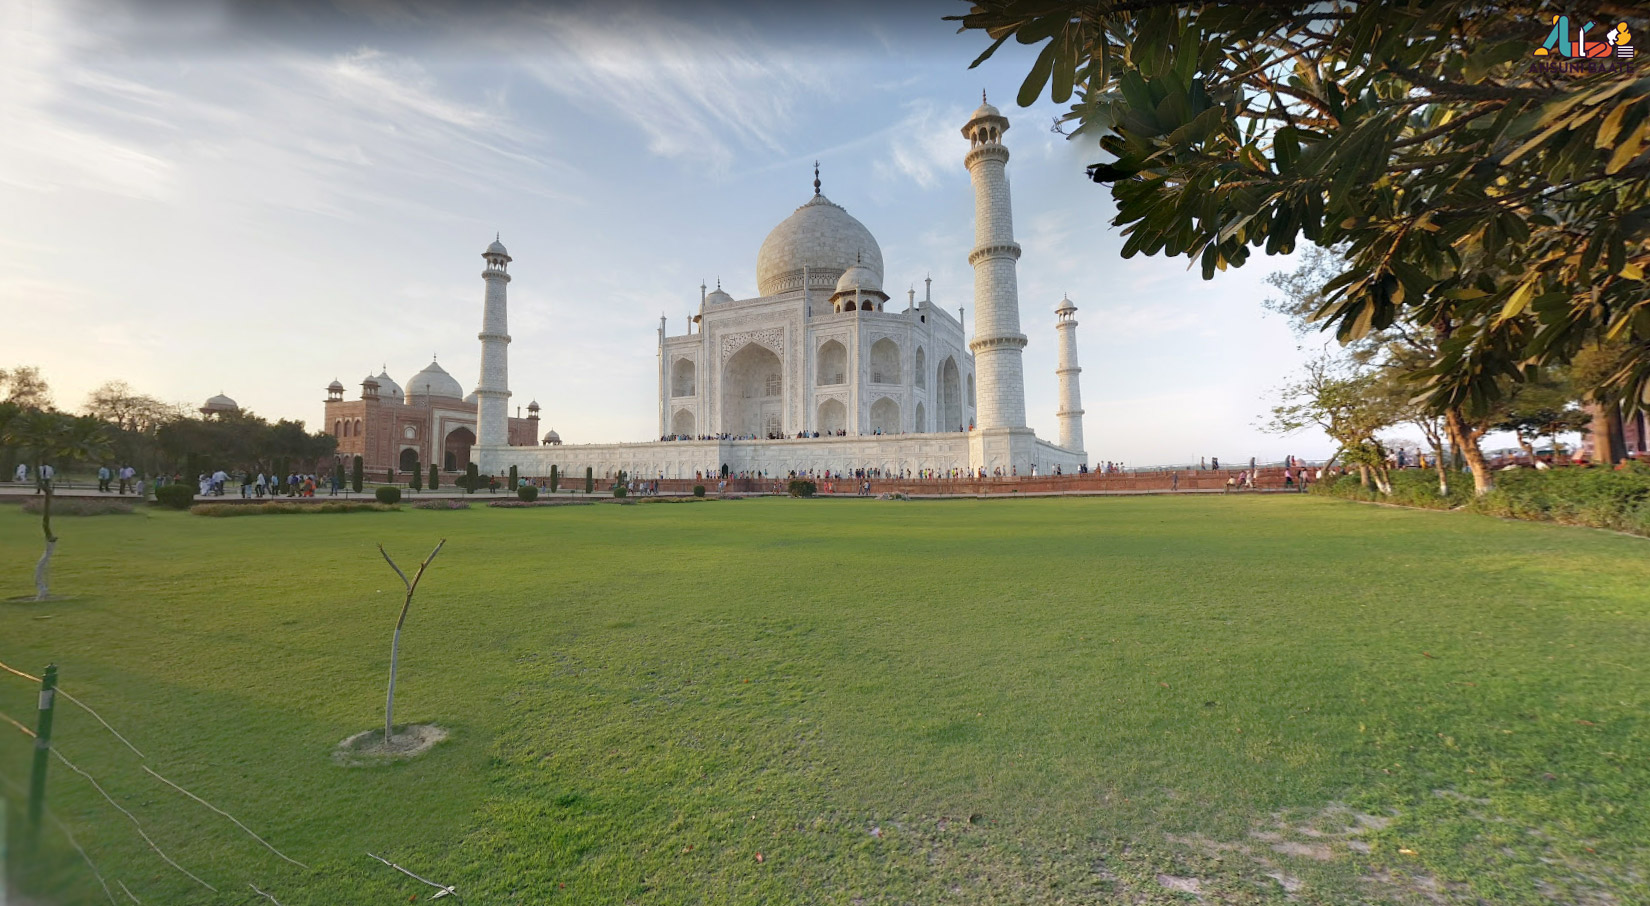 Taj Mahal Images | Taj Mahal Wallpaper And Photo Gallery